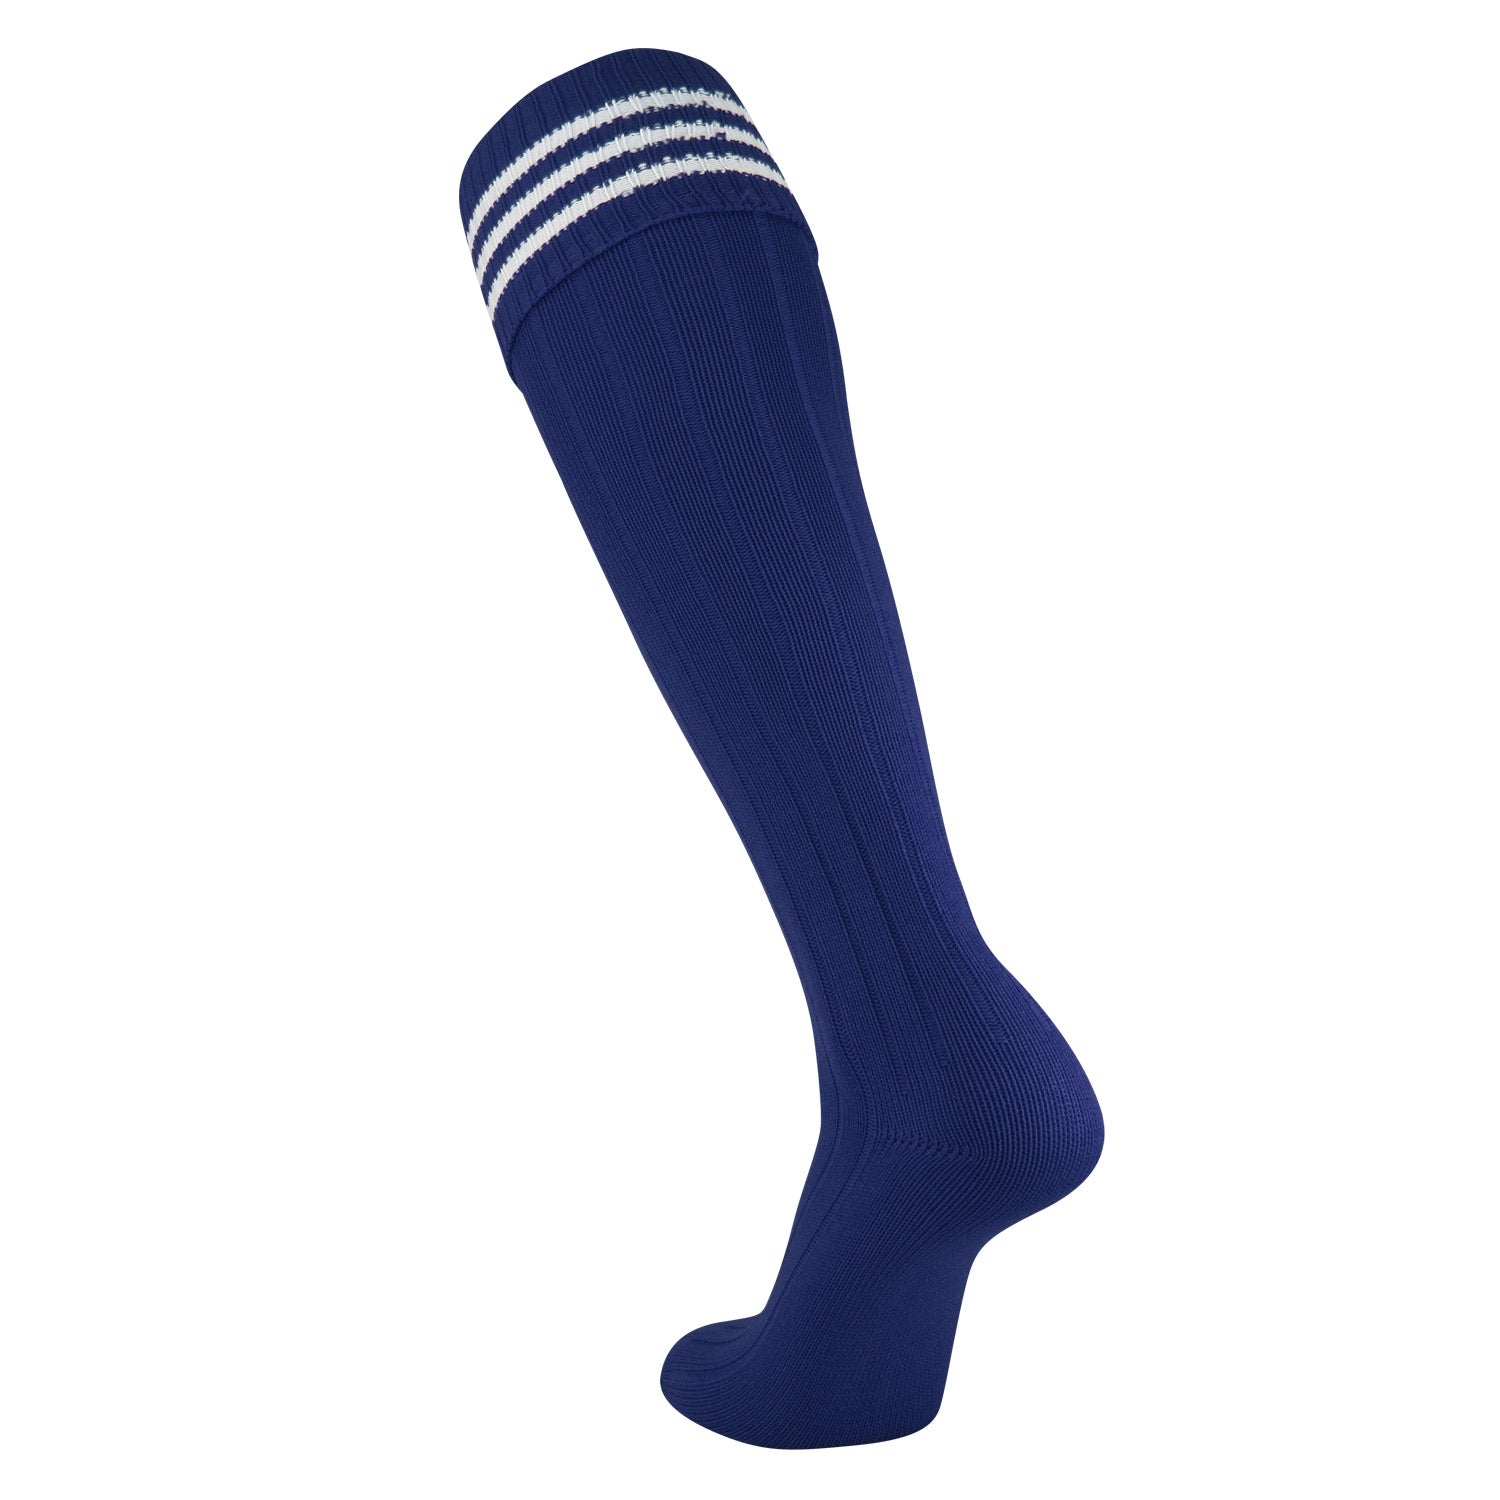 TCK European Style 3 Stripe Soccer Socks in Nylon